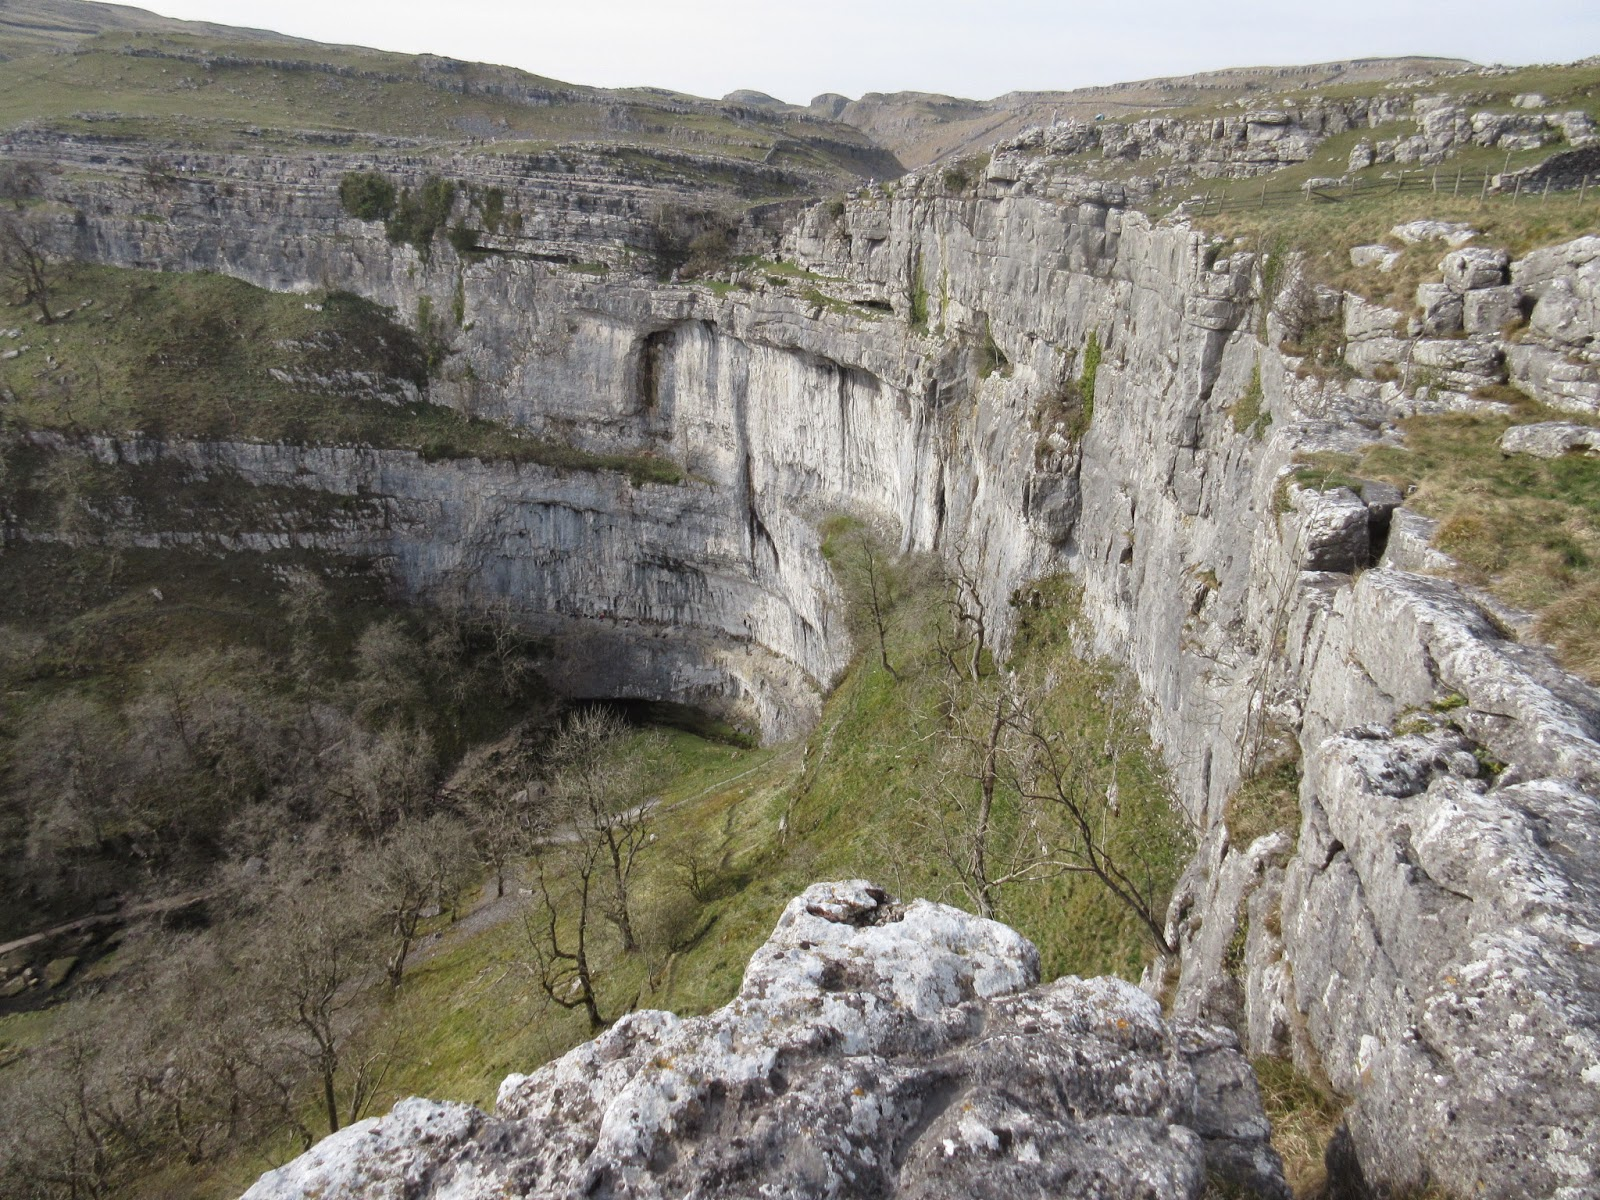 Malham Cove, where the cliff has been been cut back 500 metres from the fault line – the horse shoe shape resulting from less erosion at the sides than at the centre. Stephen Oldfield